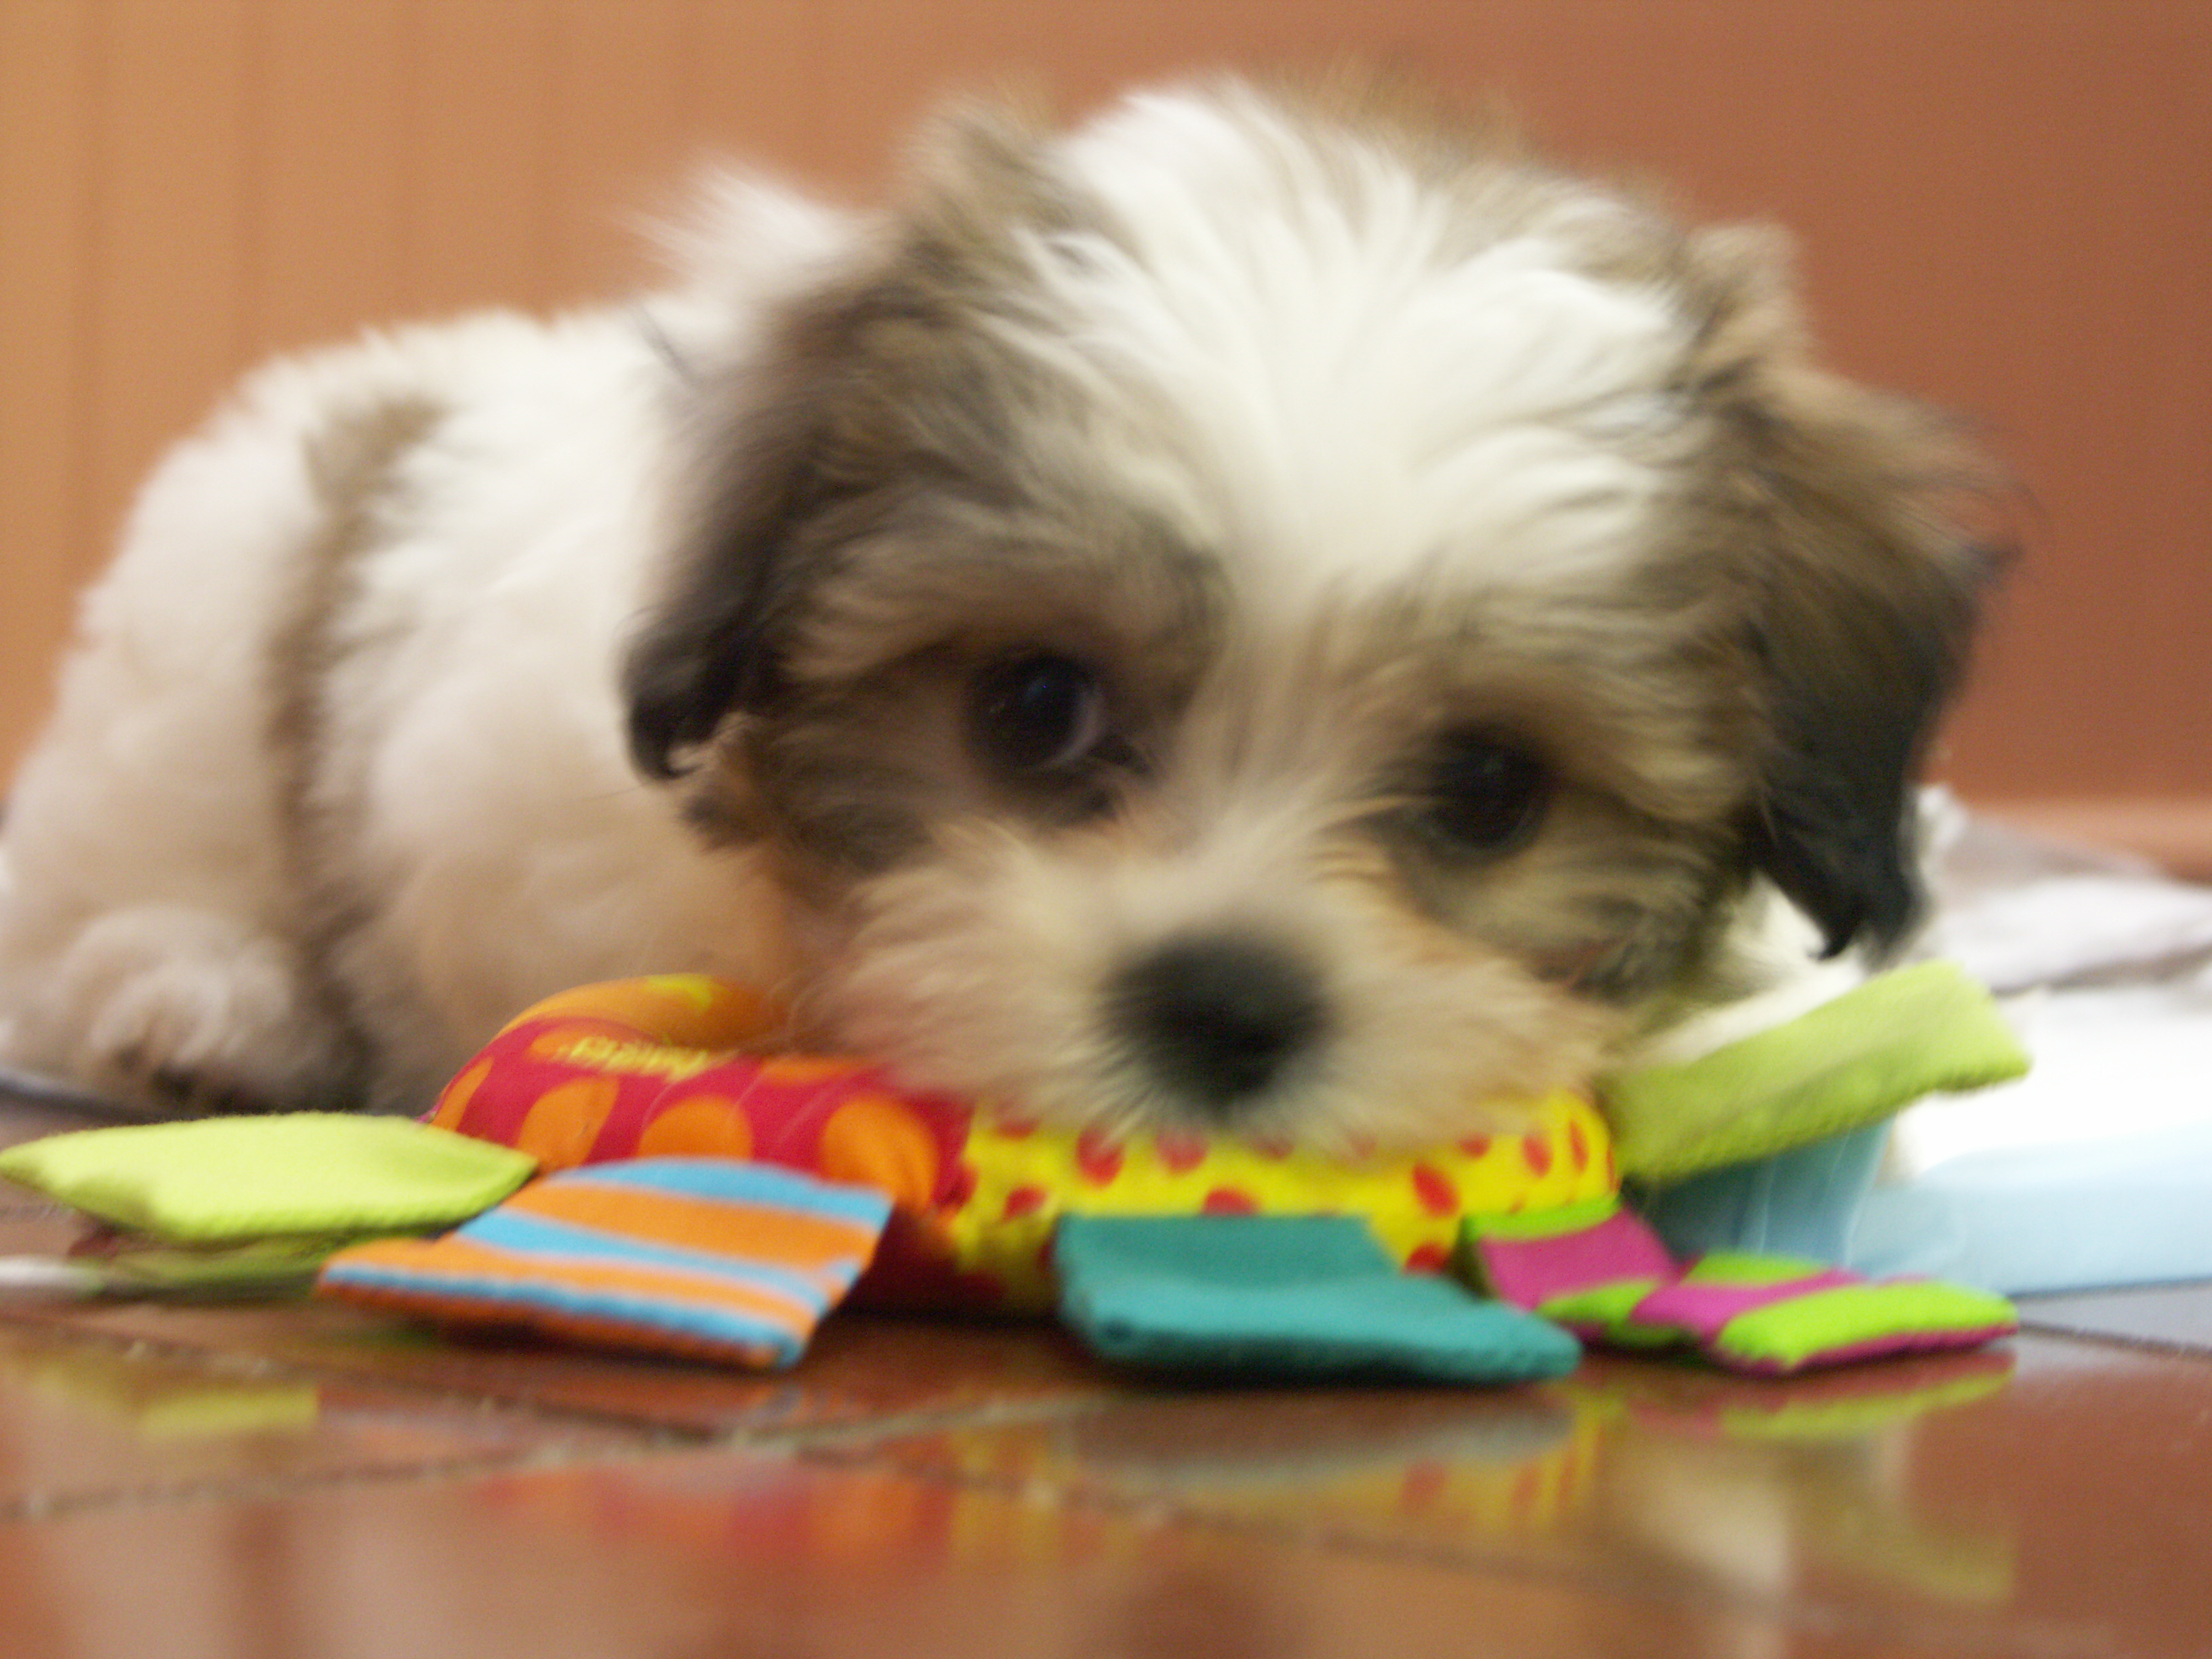 Shichon puppies for sale in indiana - Shichon Puppies For Sale In Indiana 10